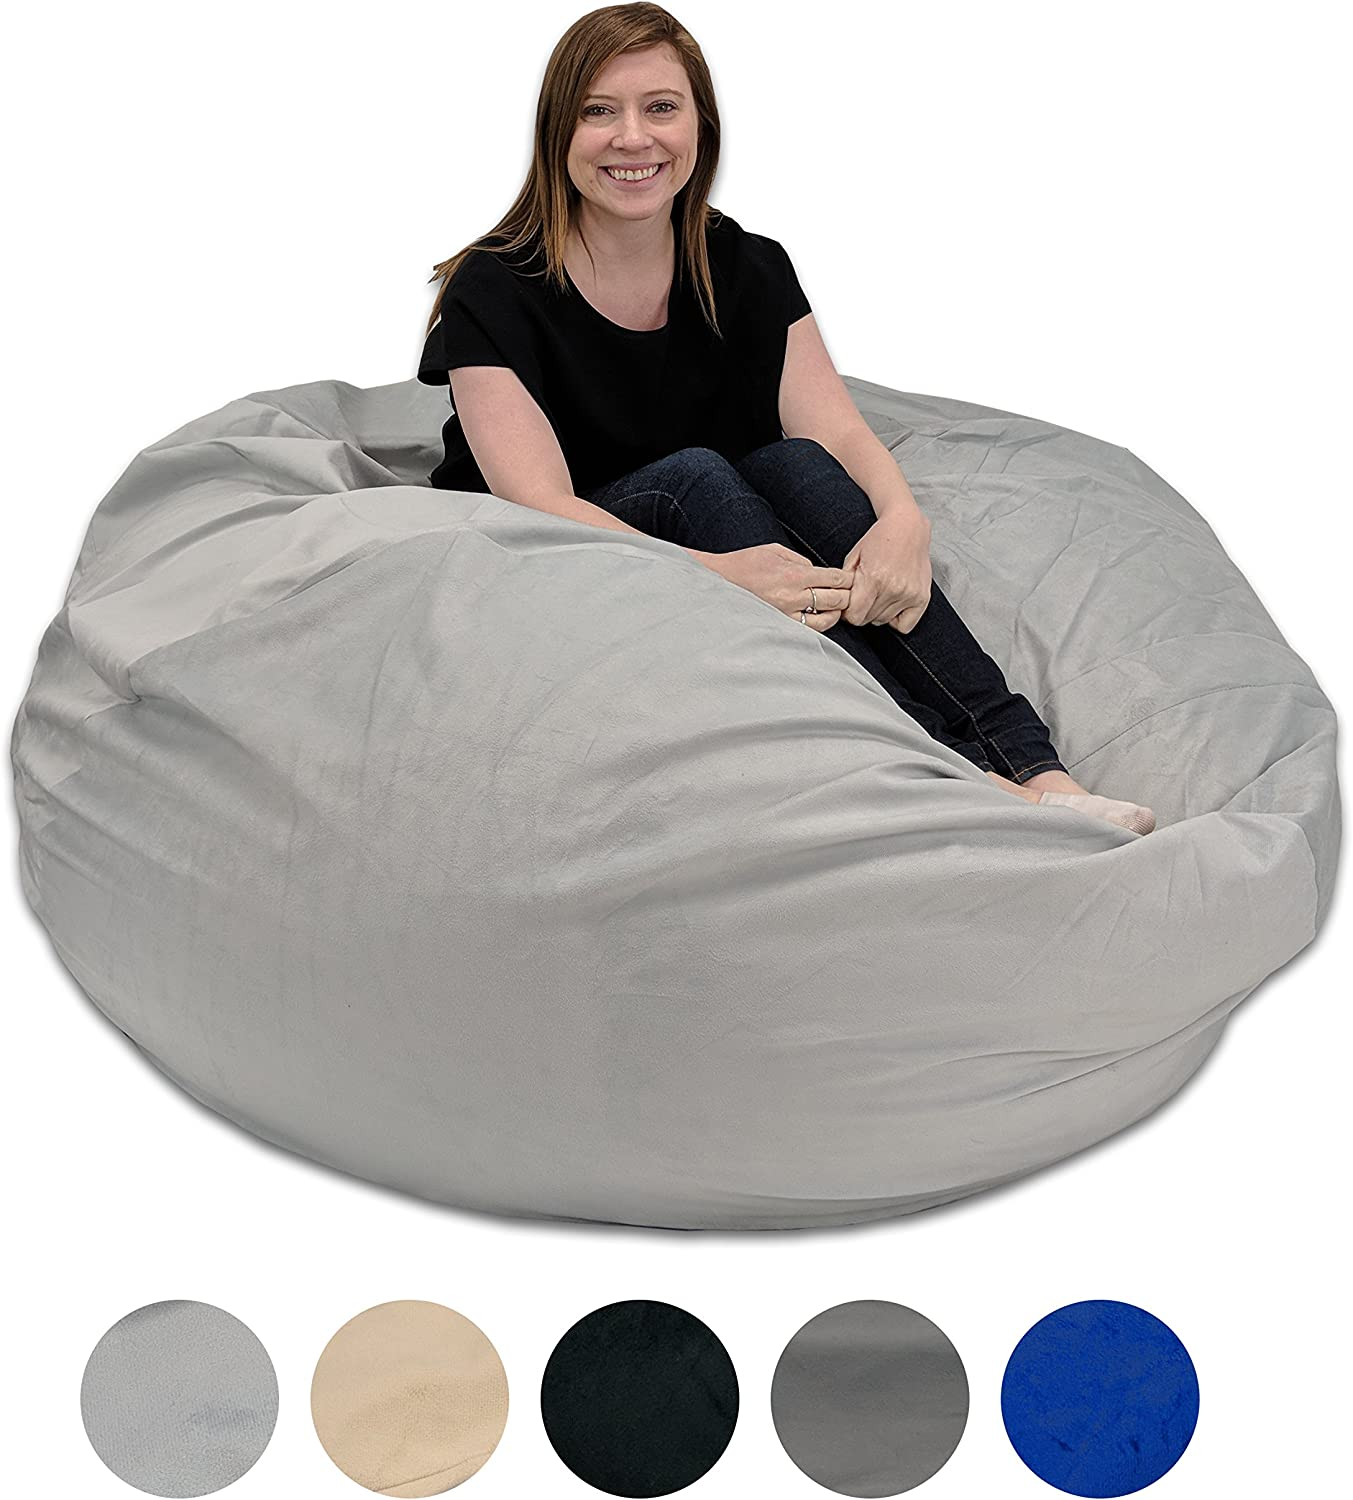 Pillowtex Quality Kids Memory Foam Bean Bag Chair 3ft Bags with Removable Washable Cover